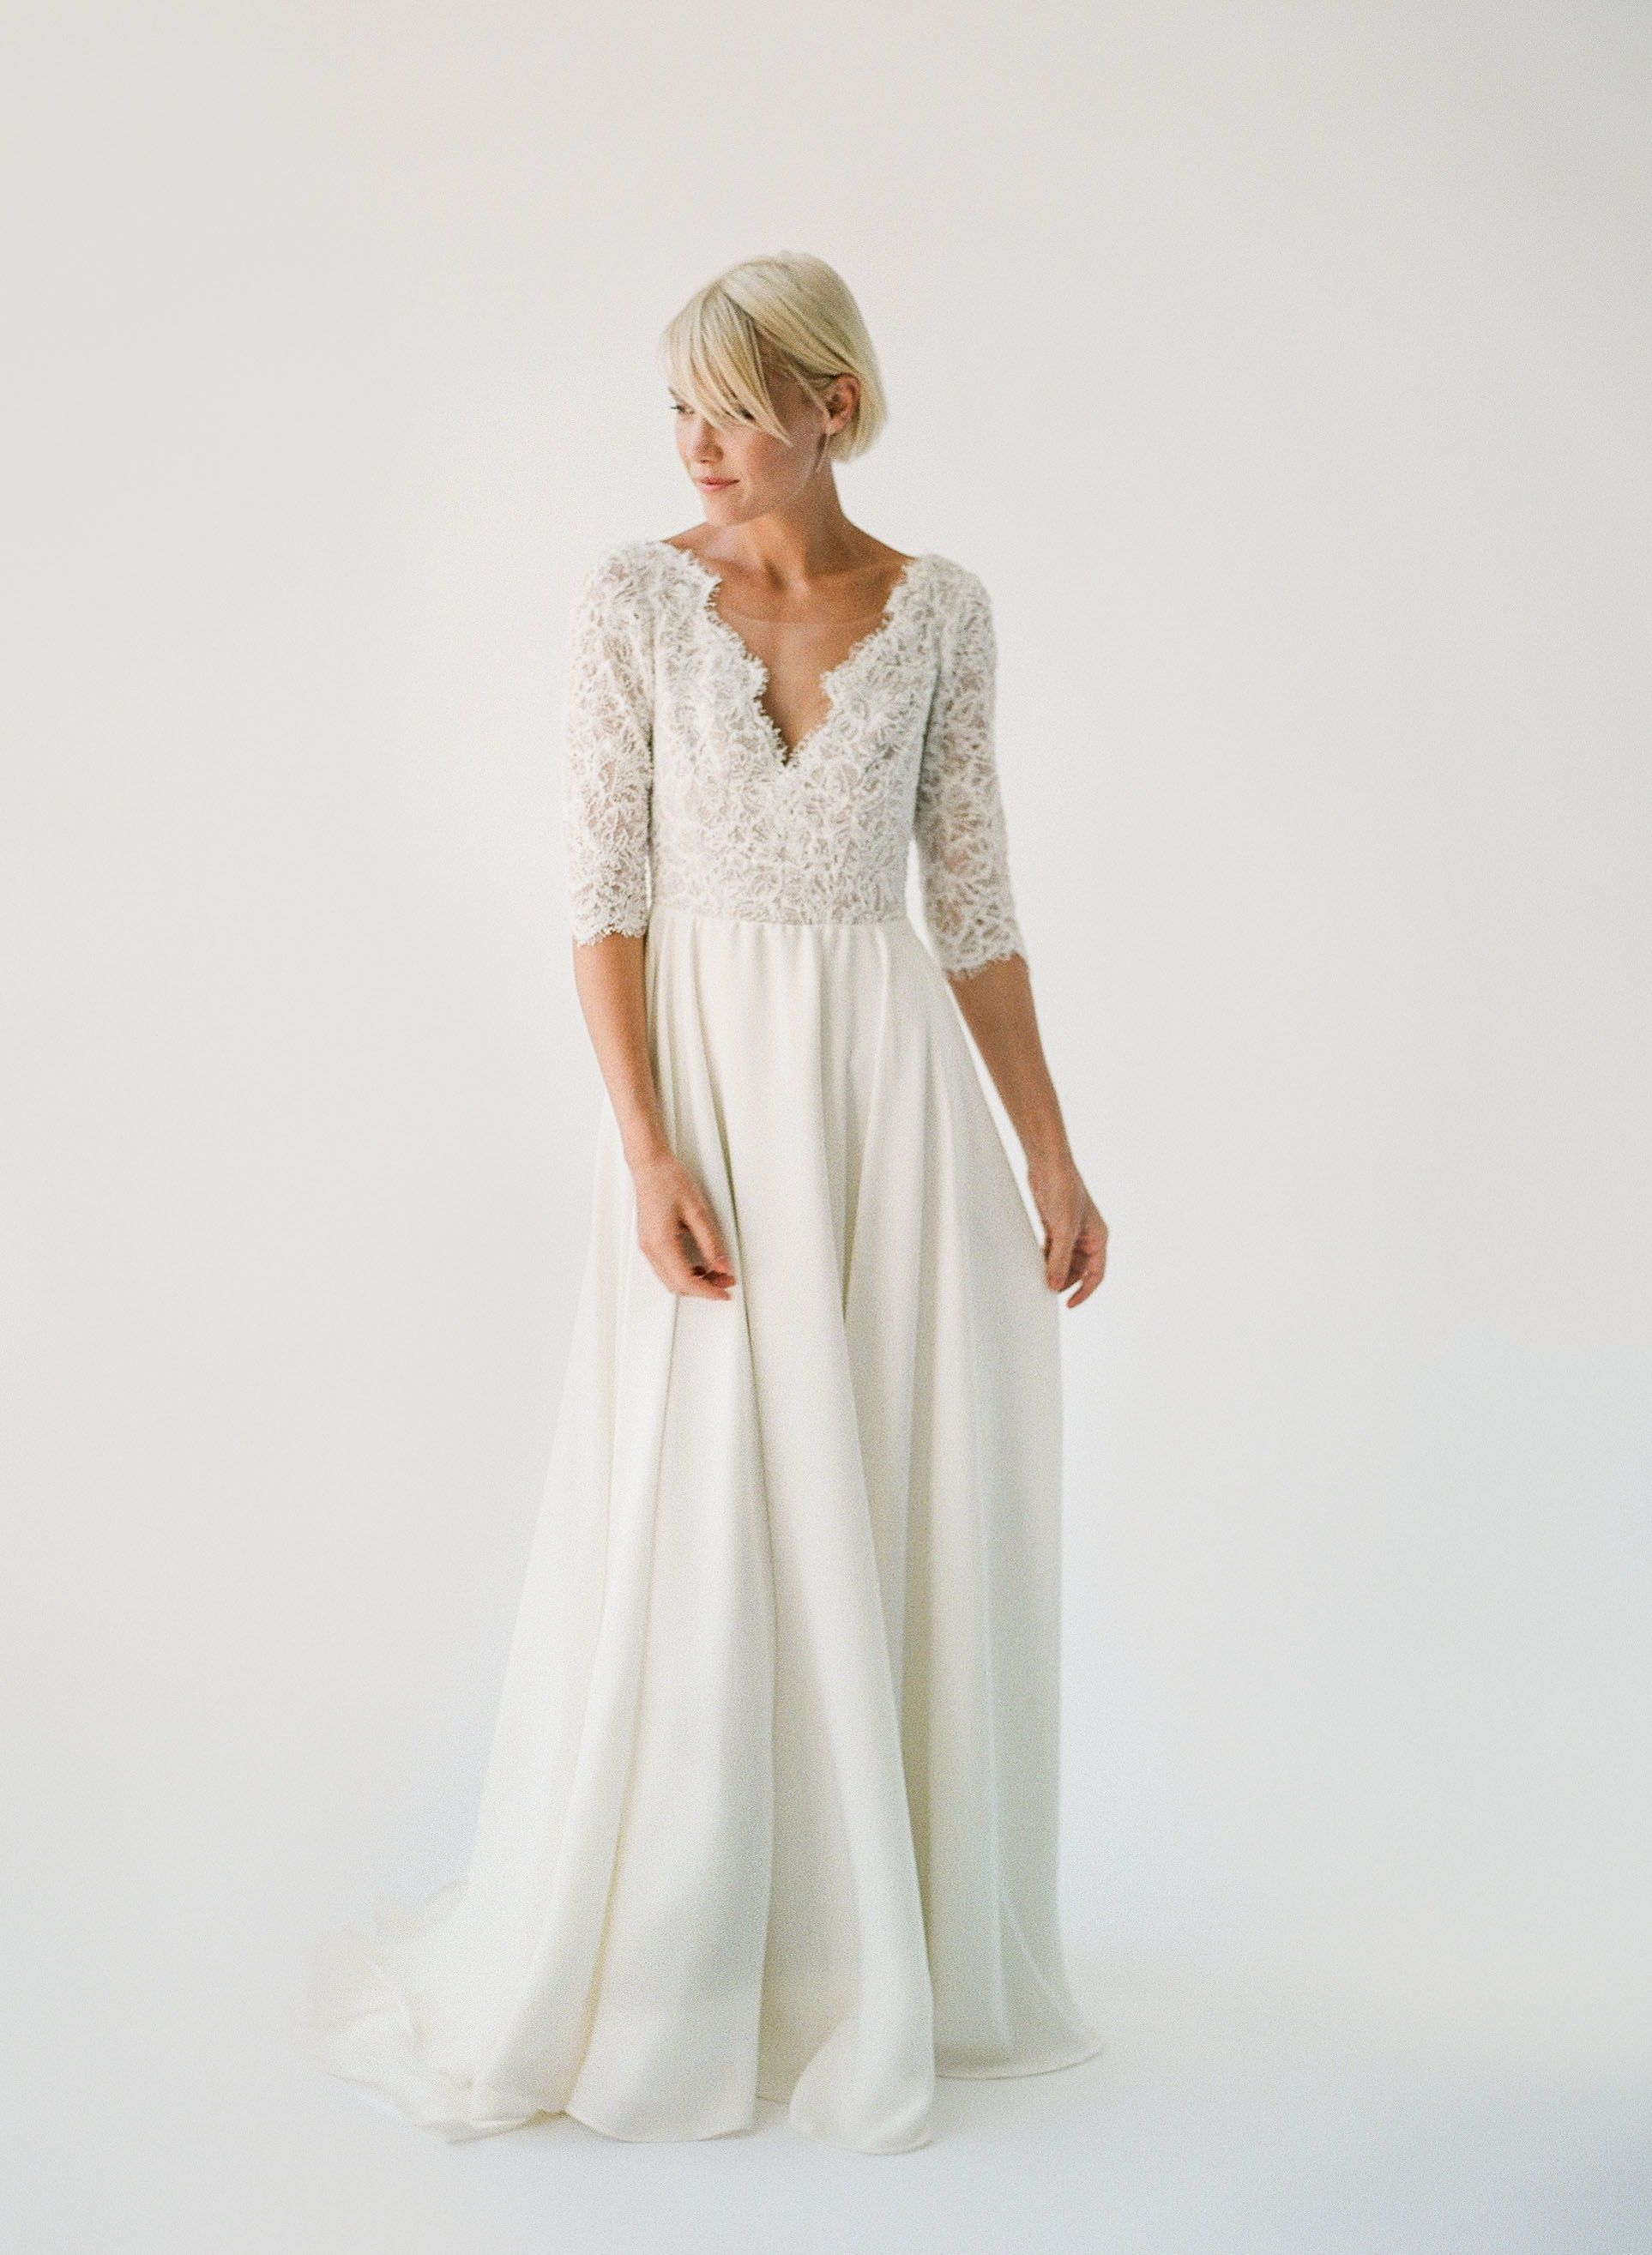 Flowy wedding dress with sleeves  Truvelleus  Collection  Allanah by Truvelle  romantic wedding